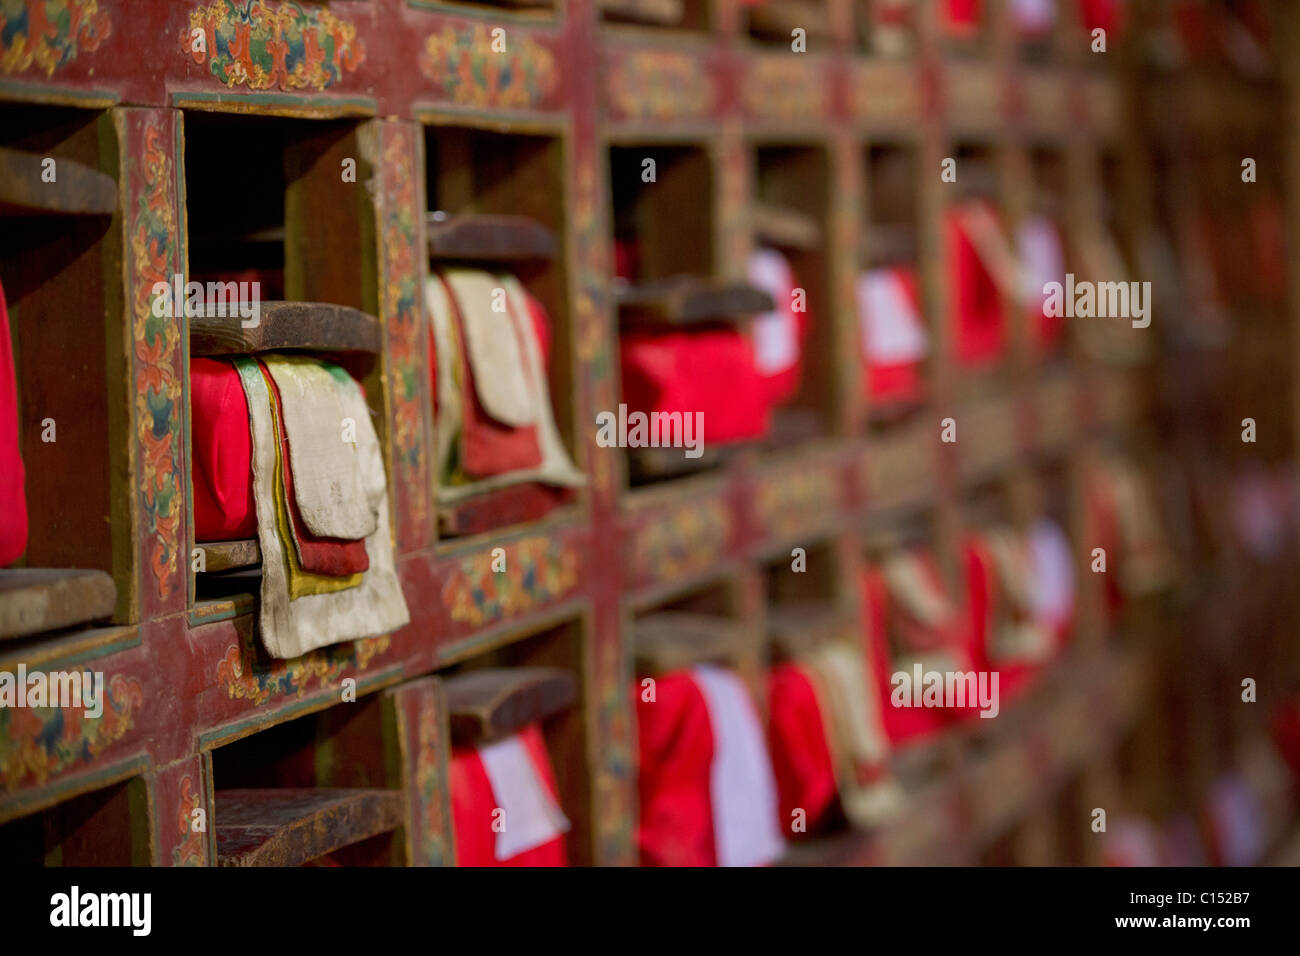 Tibetan prayer books, Leh Palace, Leh, (Ladakh) Jammu & Kashmir, India - Stock Image